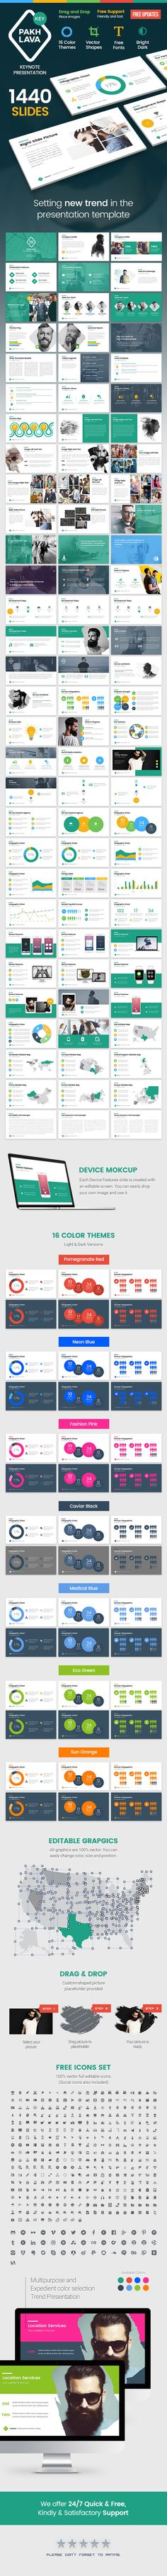 Pakhlava - Multipurpose Keynote Template. Download here: http://graphicriver.net/item/pakhlava-multipurpose-keynote-template/16602689?ref=ksioks